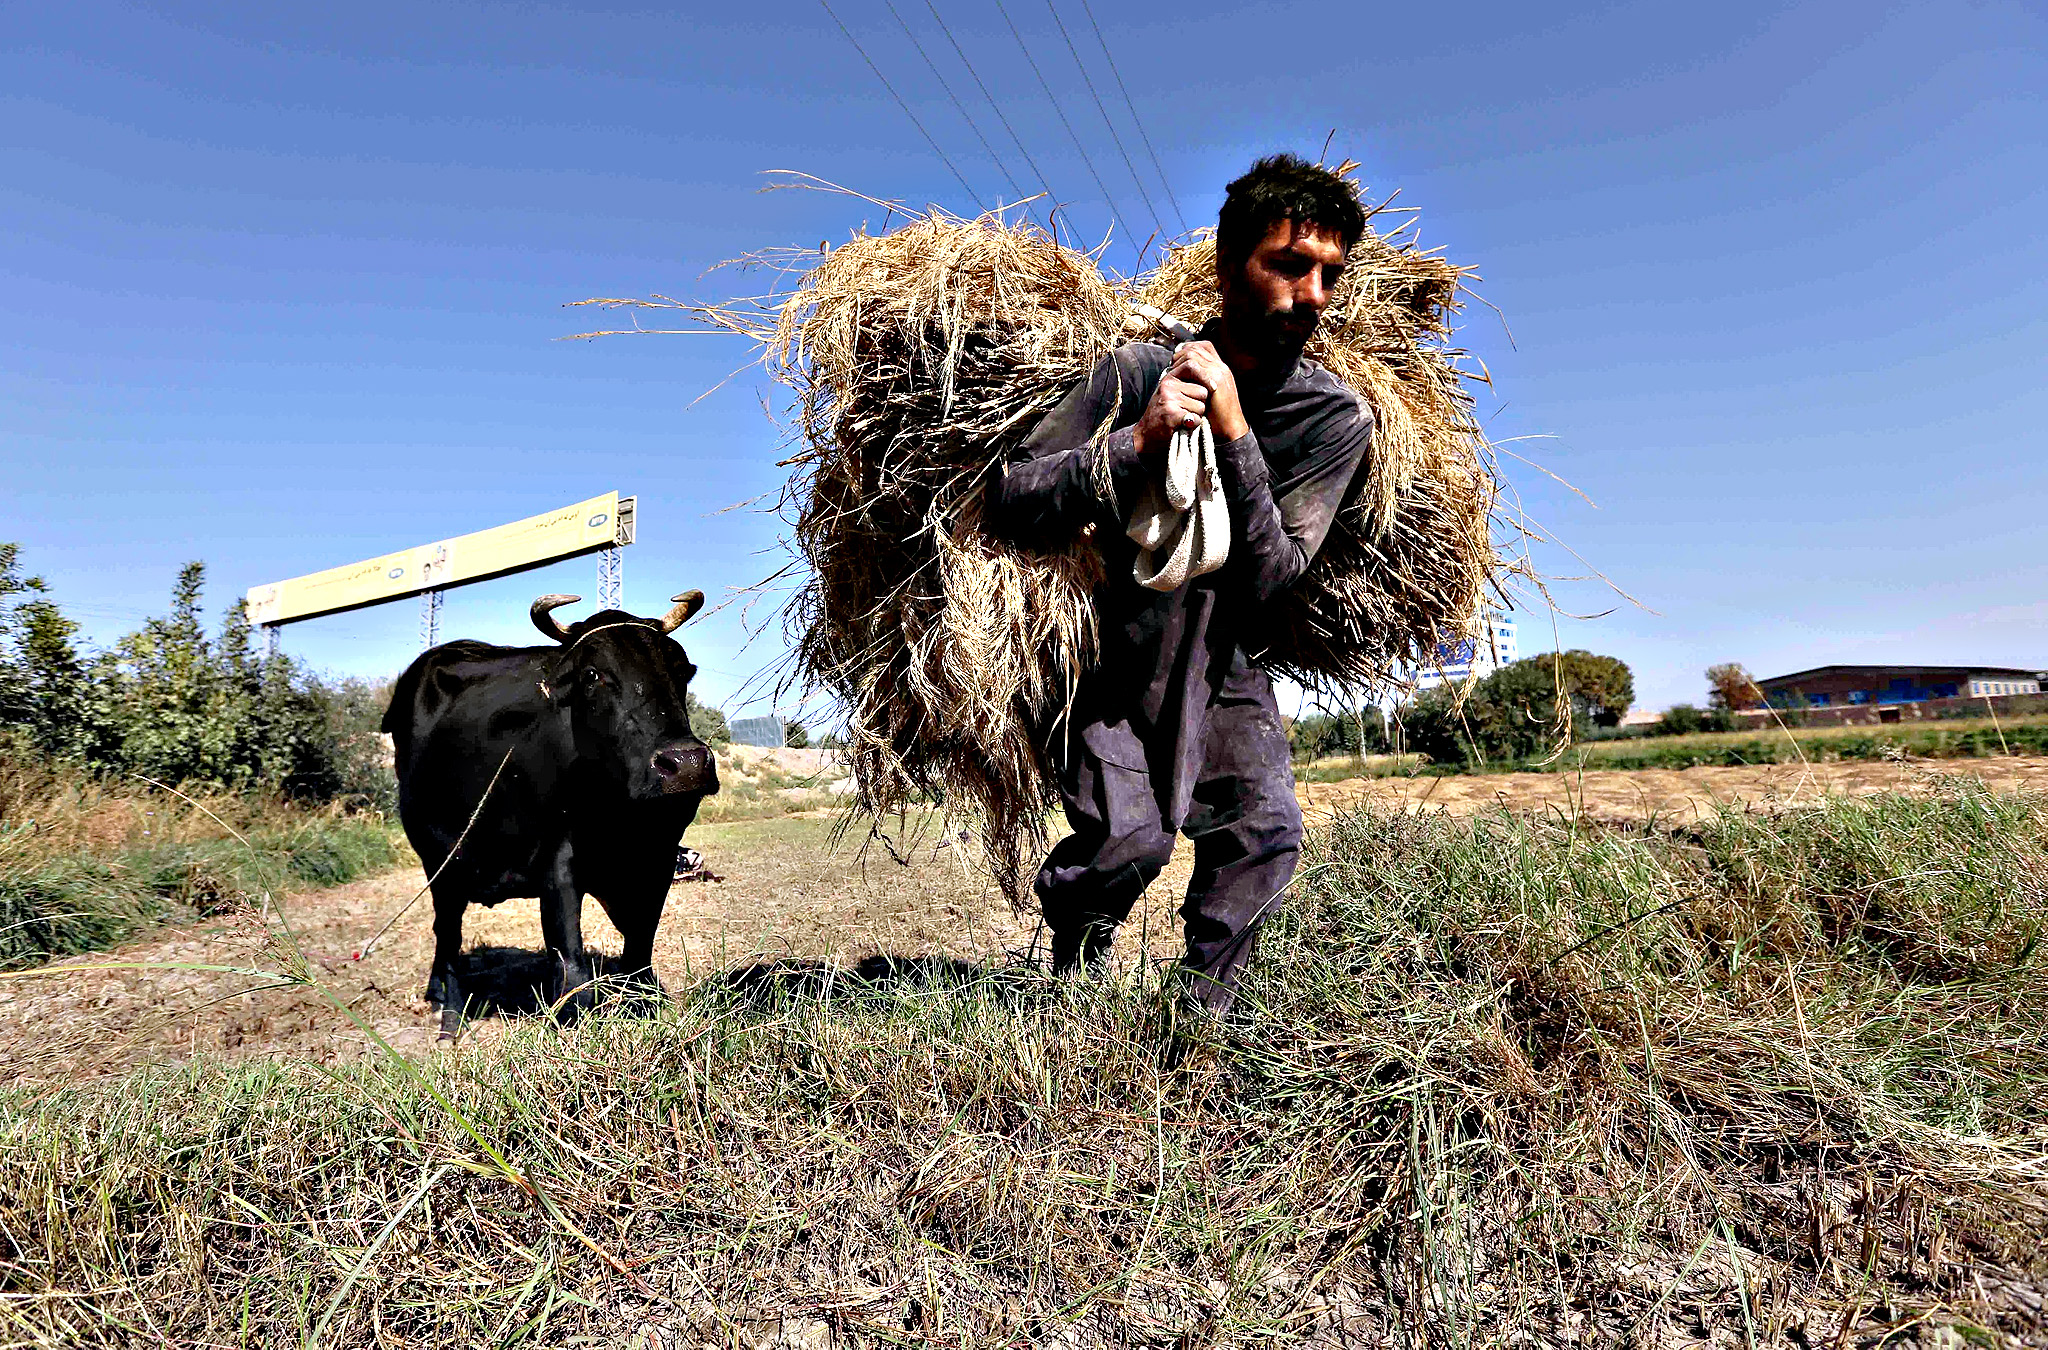 Afghan farmer harvests rice on the outskirts of Herat, Afghanistan, 13 October 2015. The Afghan government is encouraging farmers to grow wheat, rice and vegetables instead of opium.